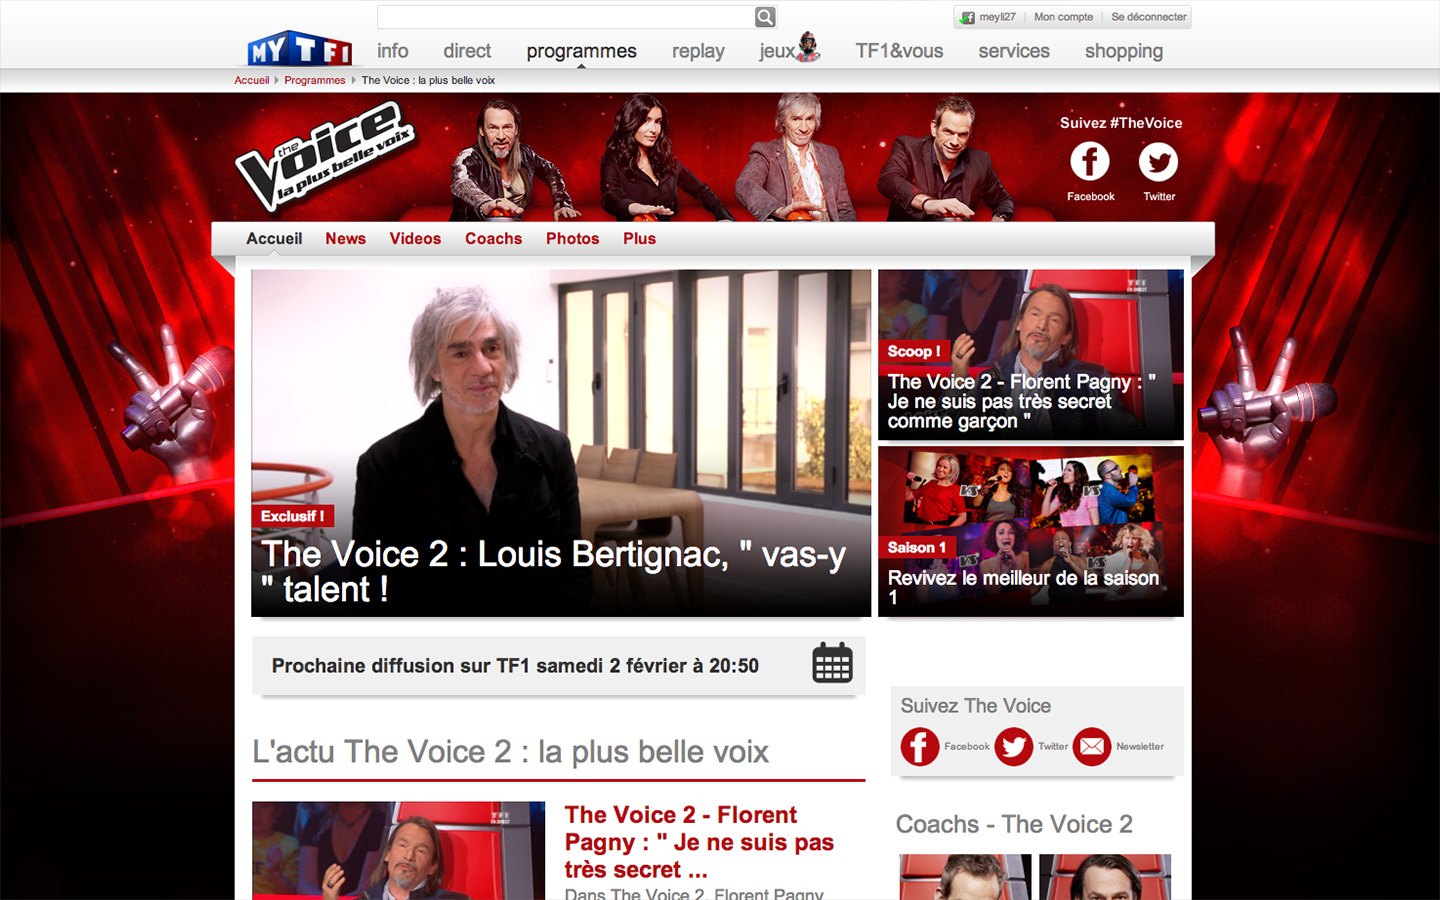 The Voice 2 - Website 2